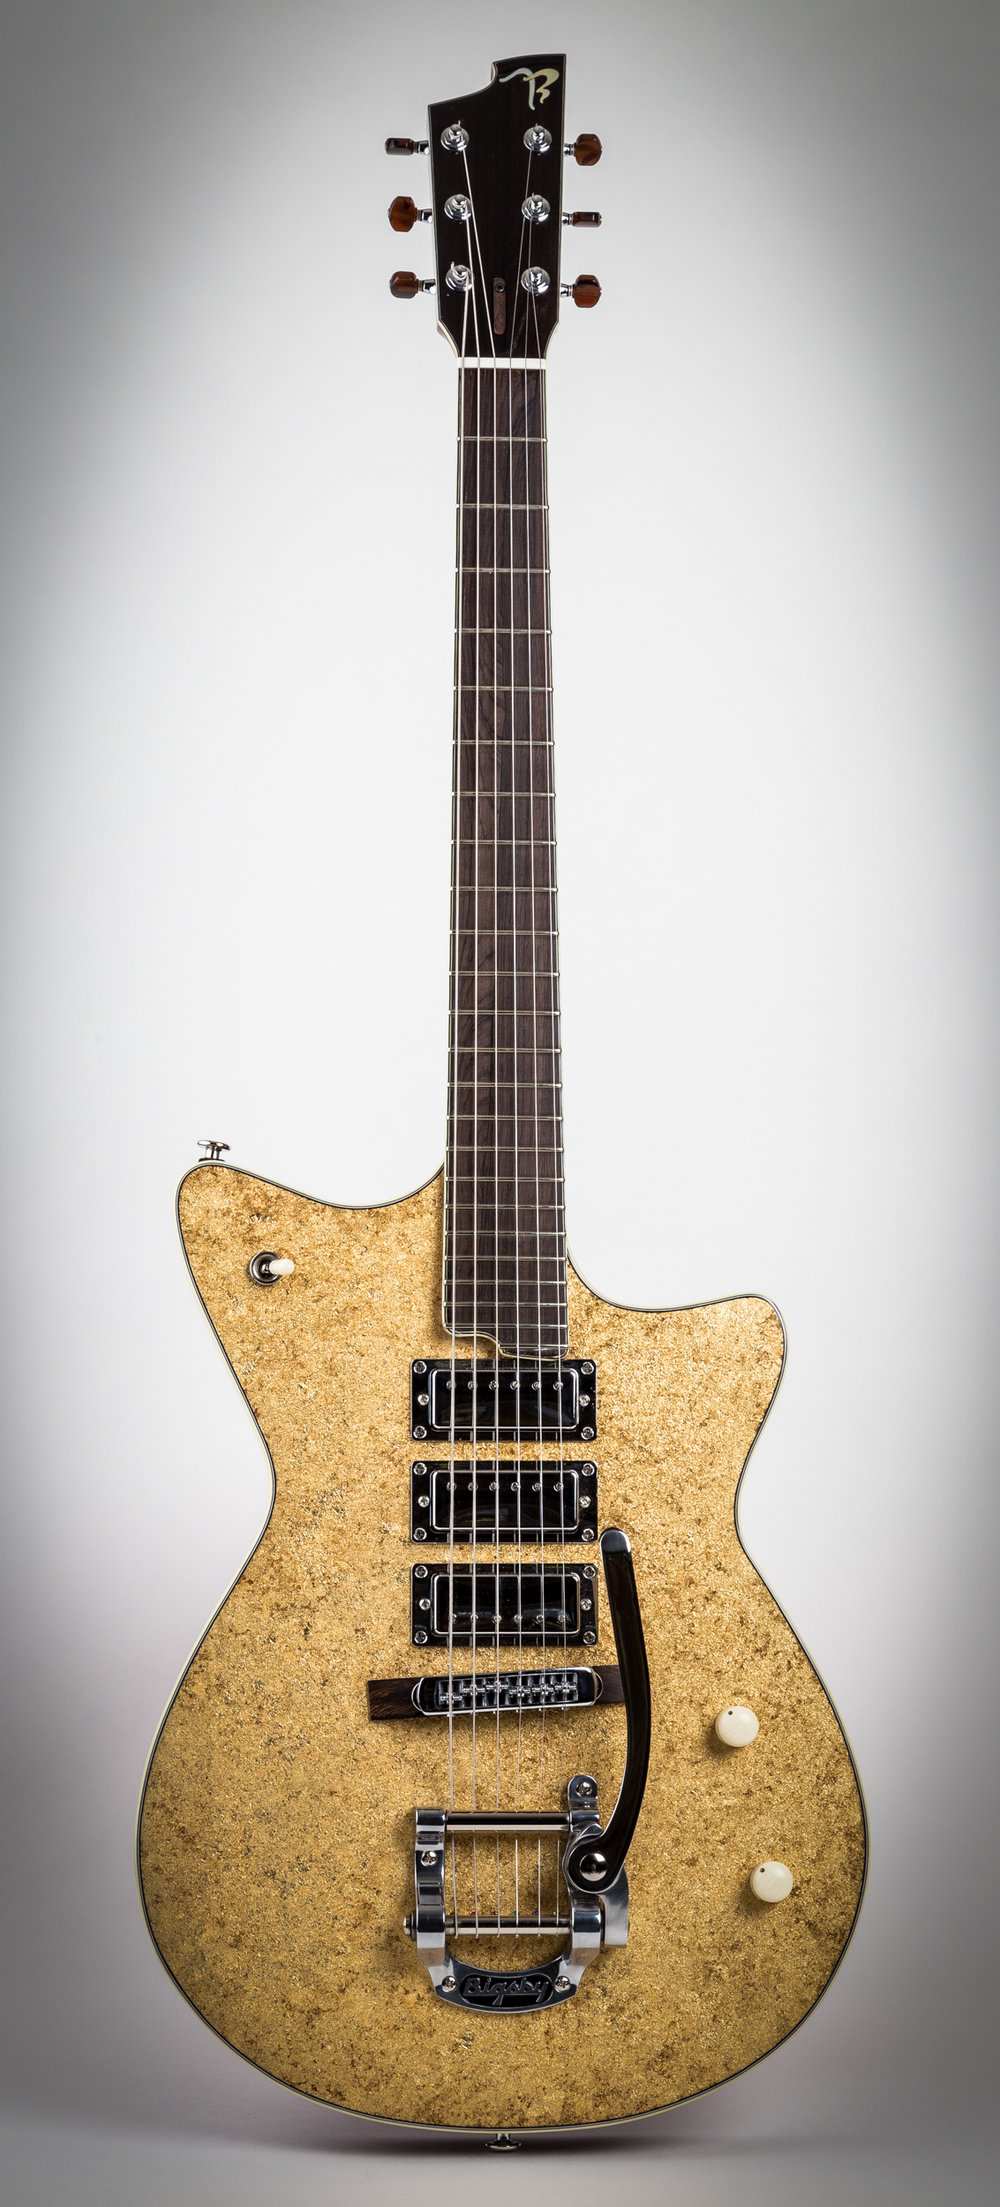 "7/11-G ""Vegas Showgirl"" in gold leaf with three pickups!"